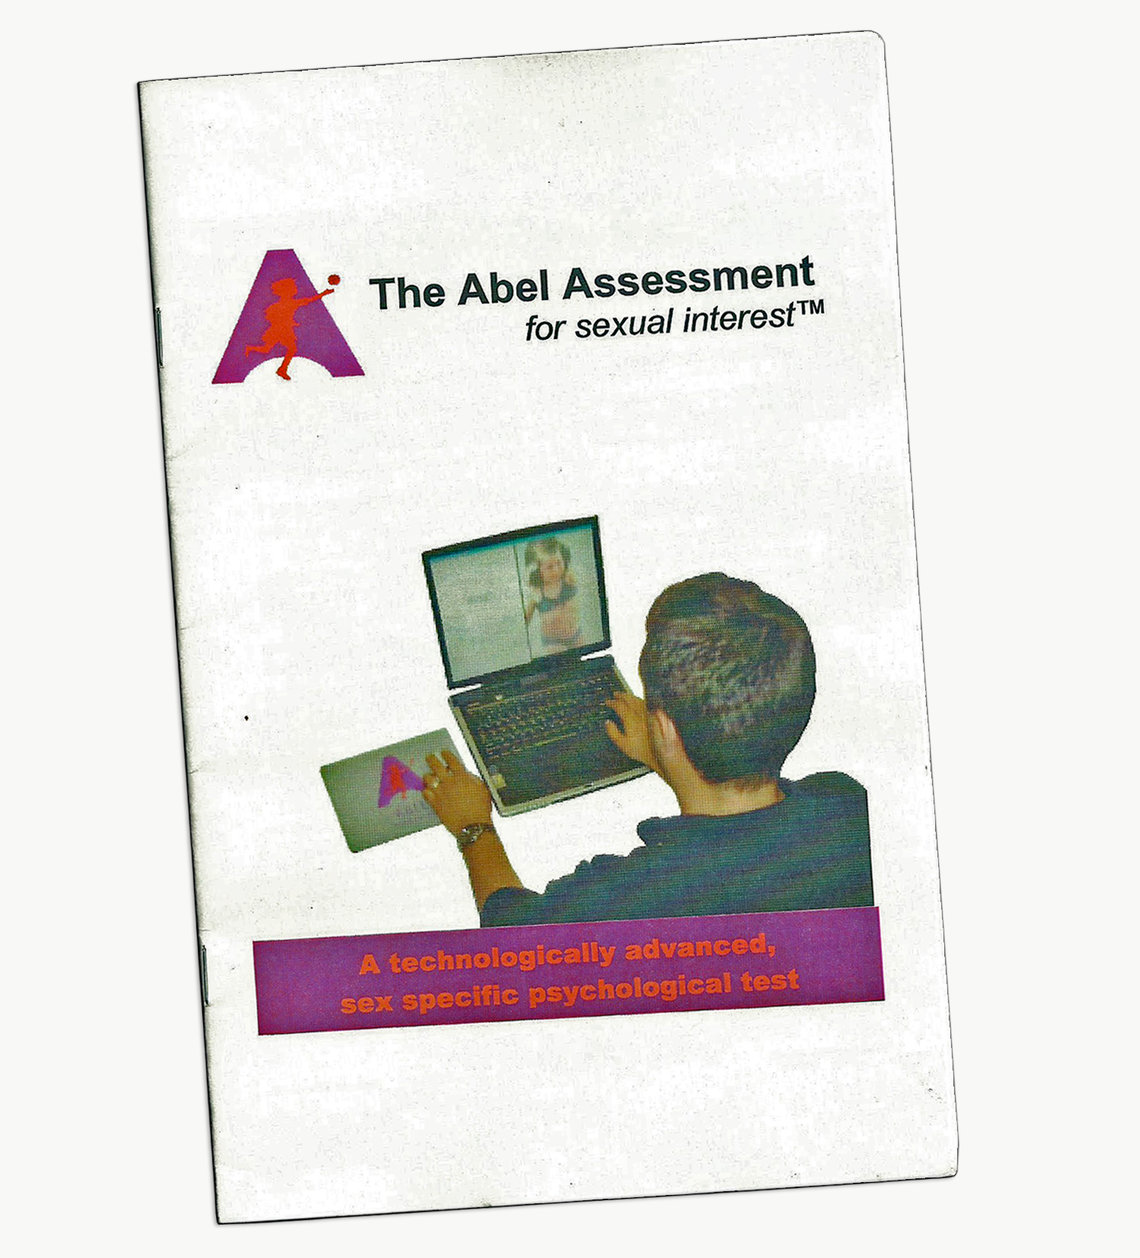 A 2005 promotional pamphlet for clinicians.